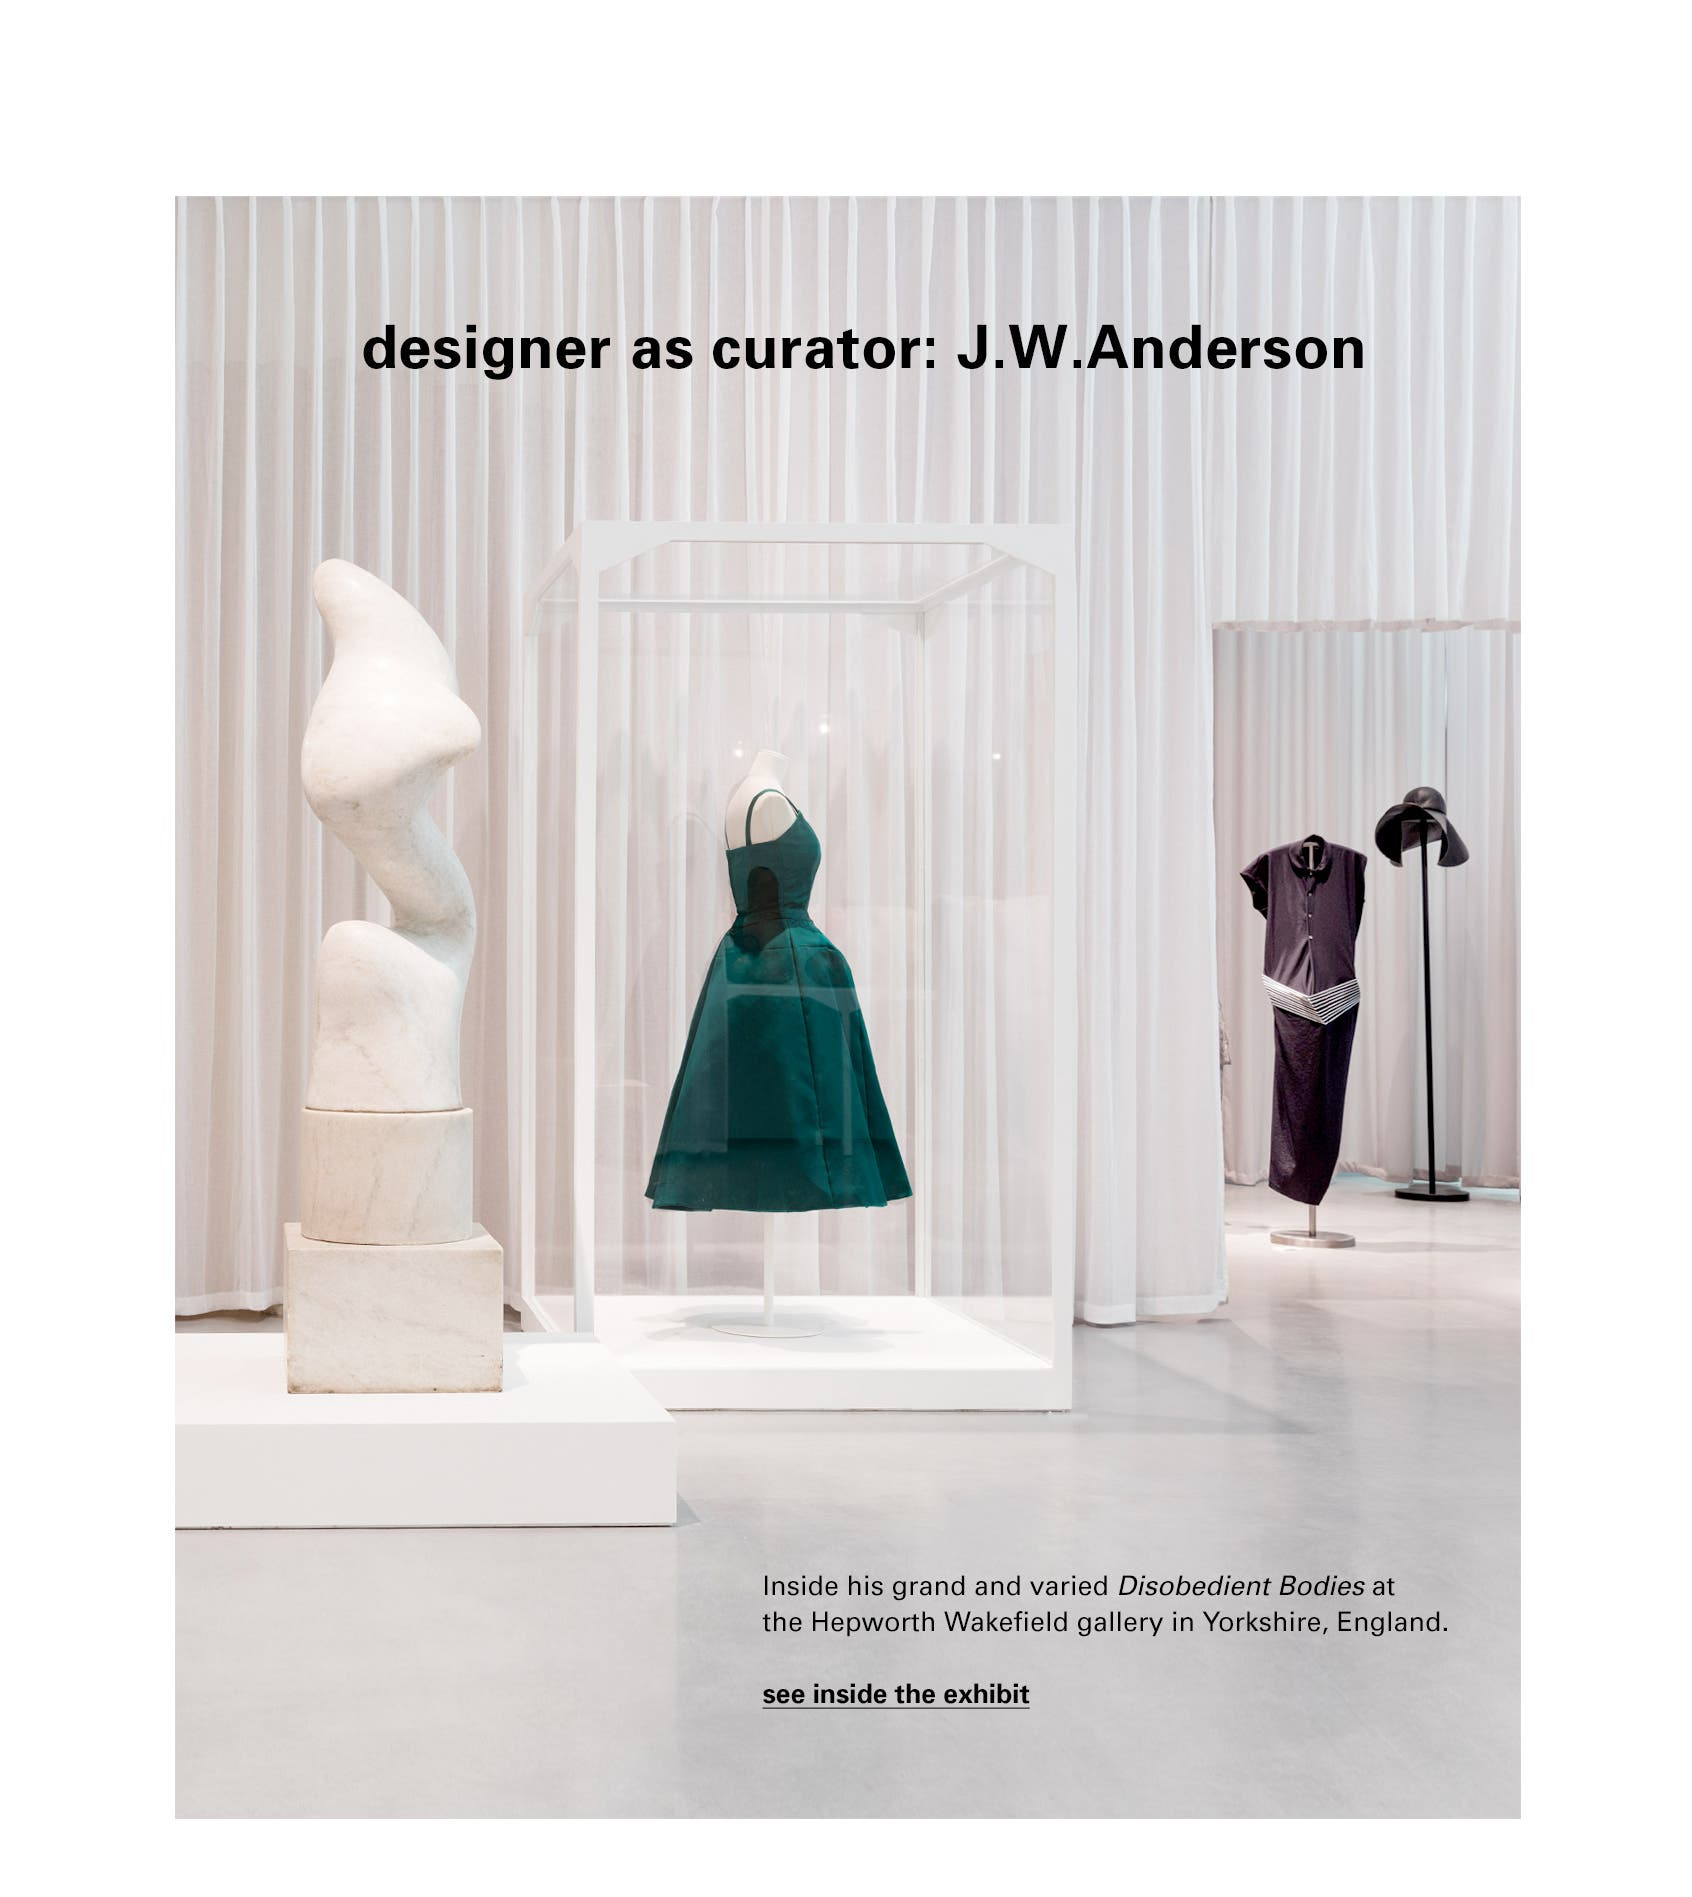 Designer as curator: J.W. Anderson. Inside his grand and varied Disobedient Bodies at the Hepworth Wakefield gallery in Yorkshire, England.